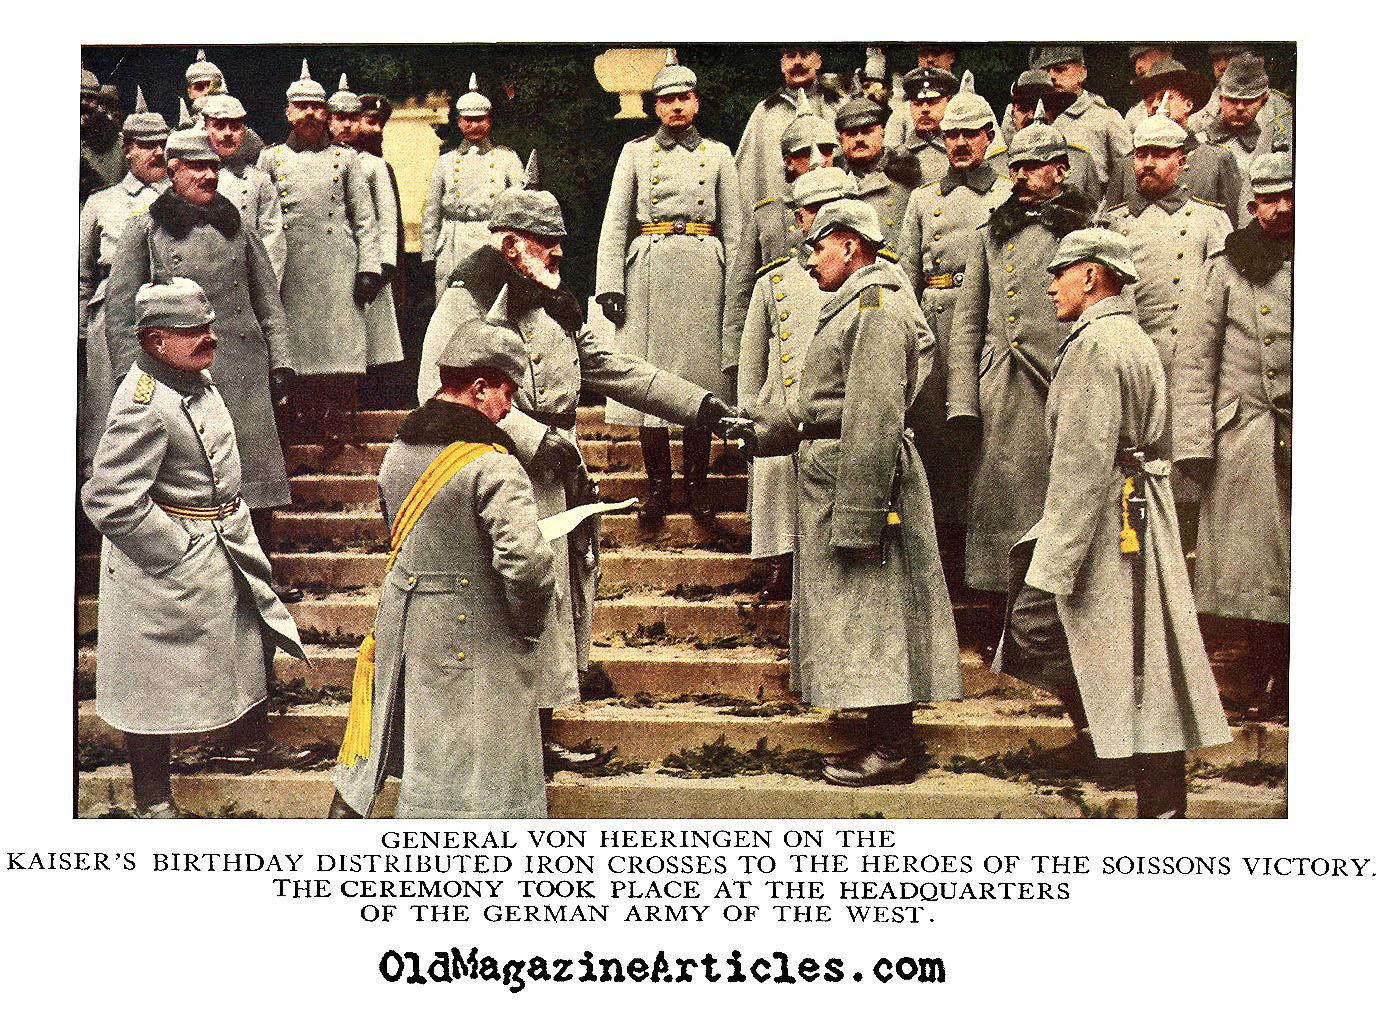 WW1 GERMAN GENERAL VON HEERINGEN TINTED PHOTOGRAPH,HAND TINTED